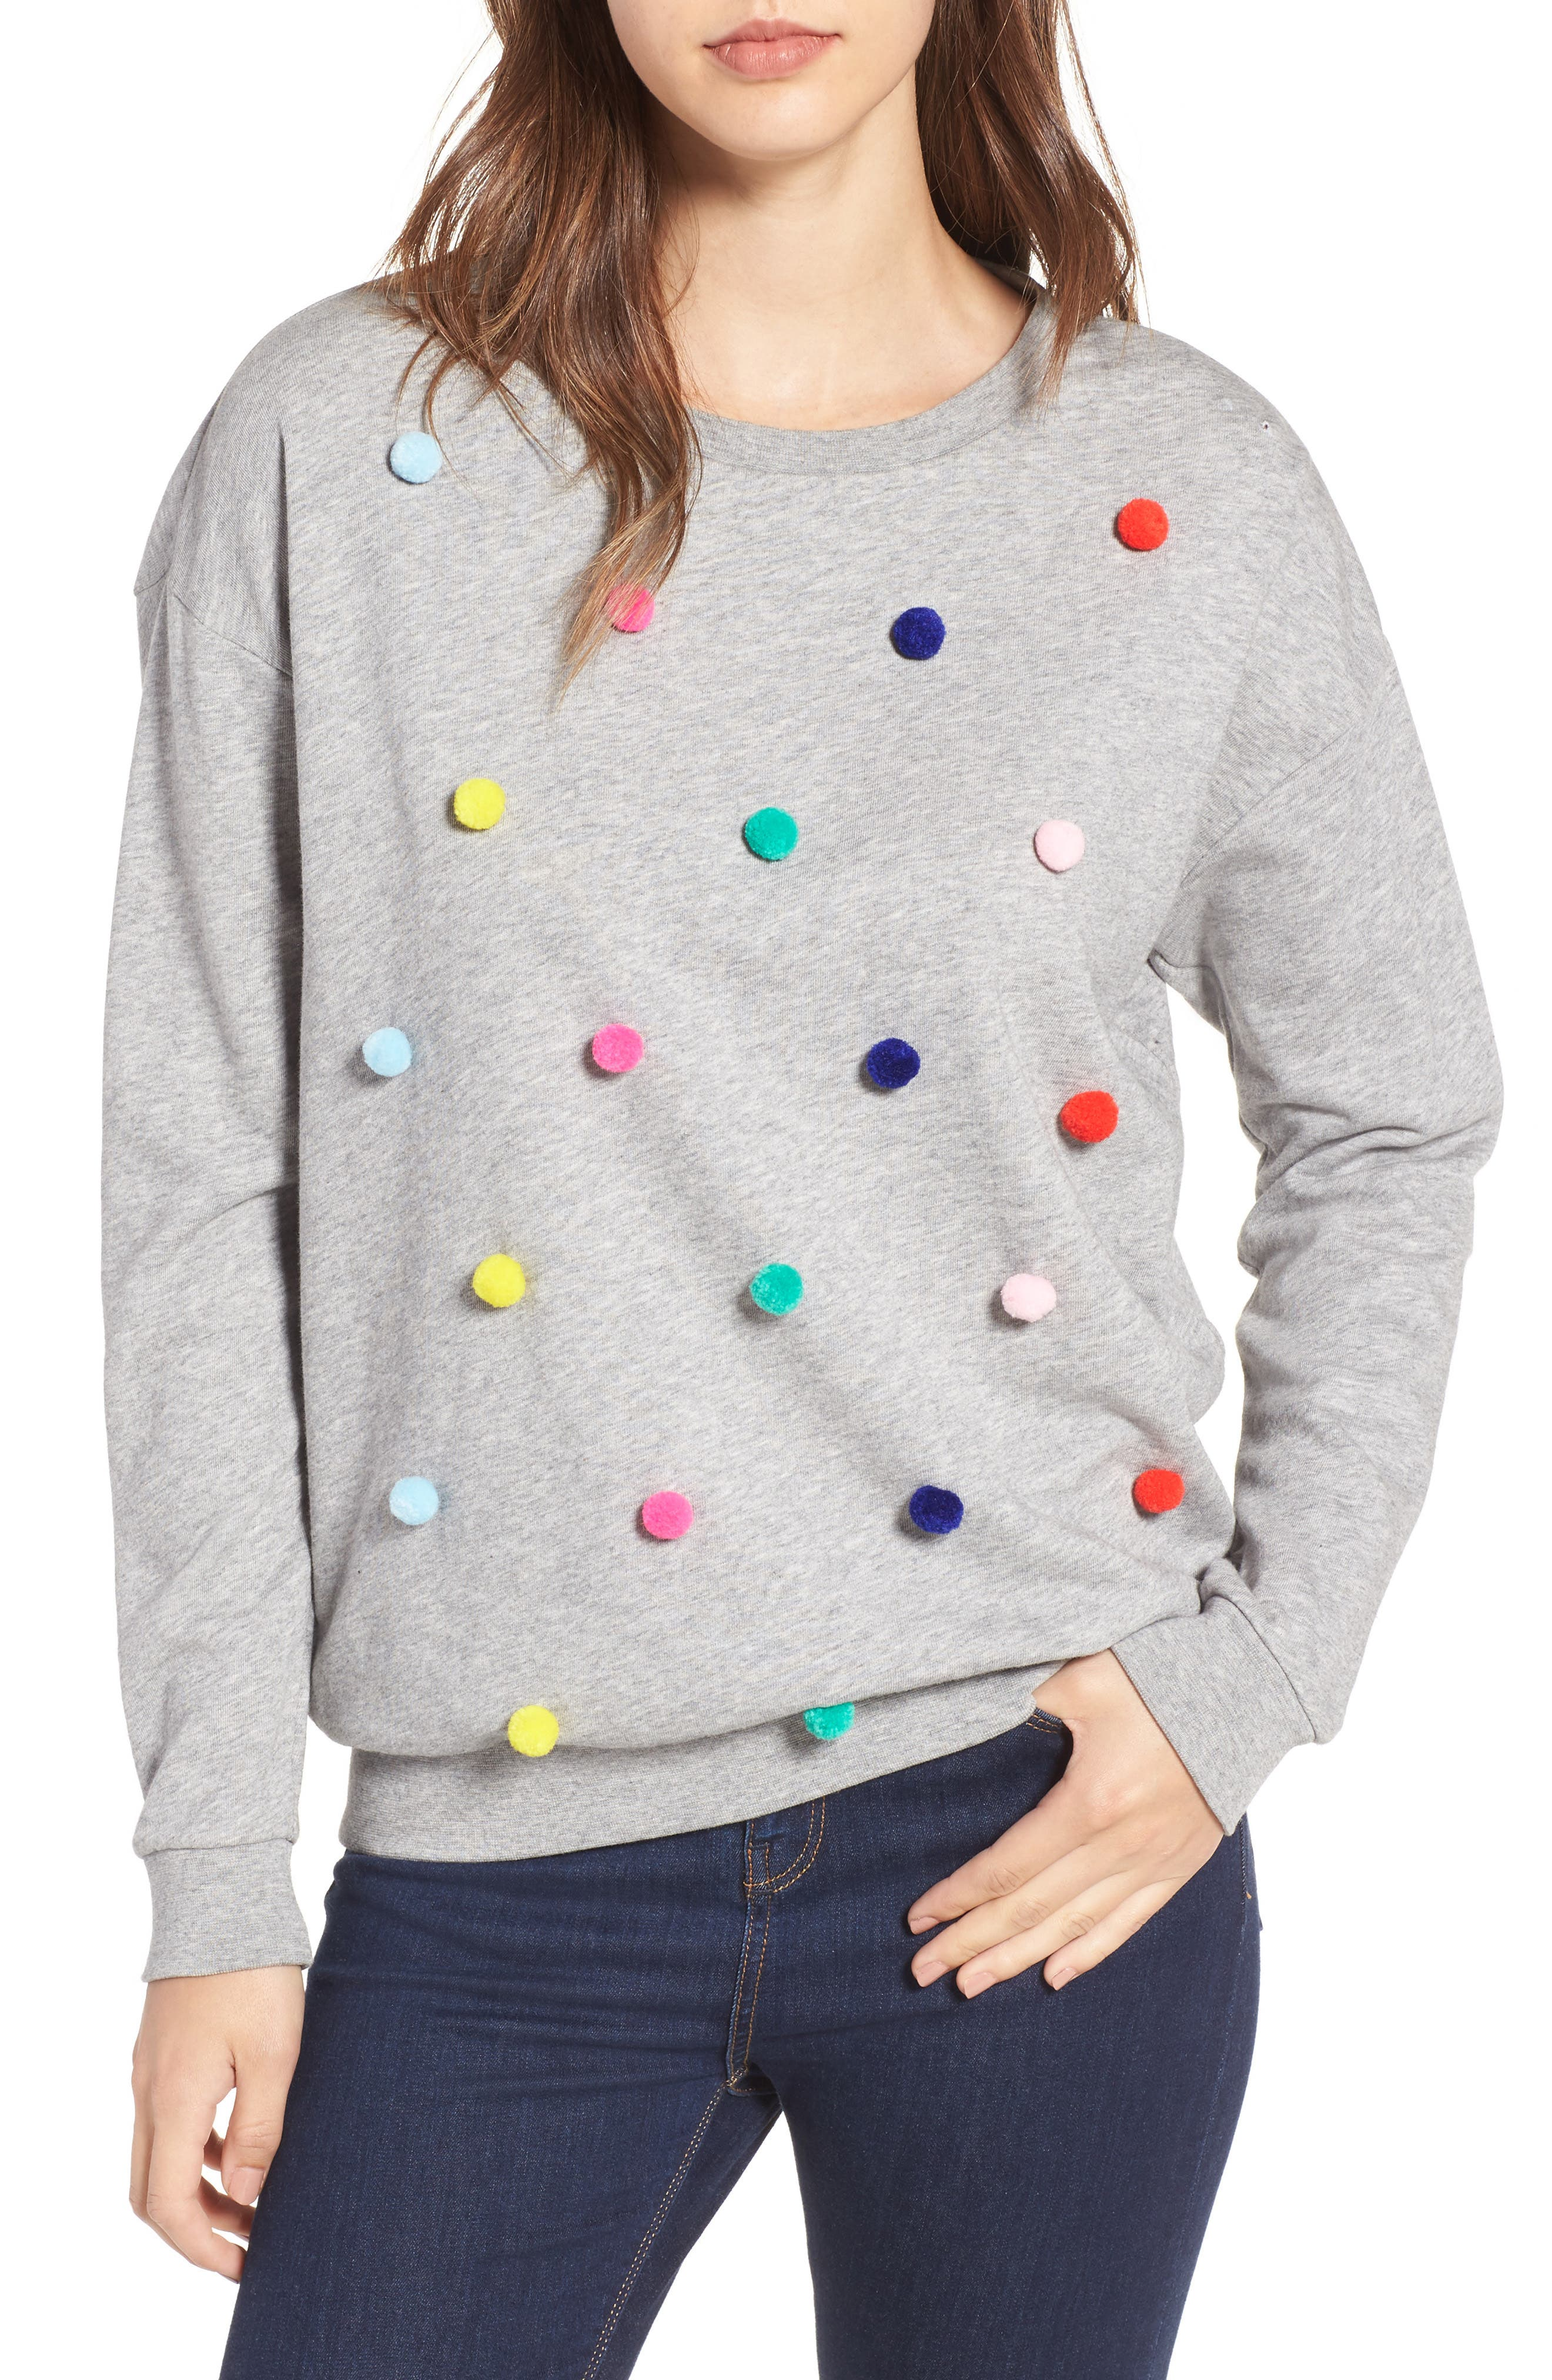 Pompom Sweatshirt,                         Main,                         color, 020